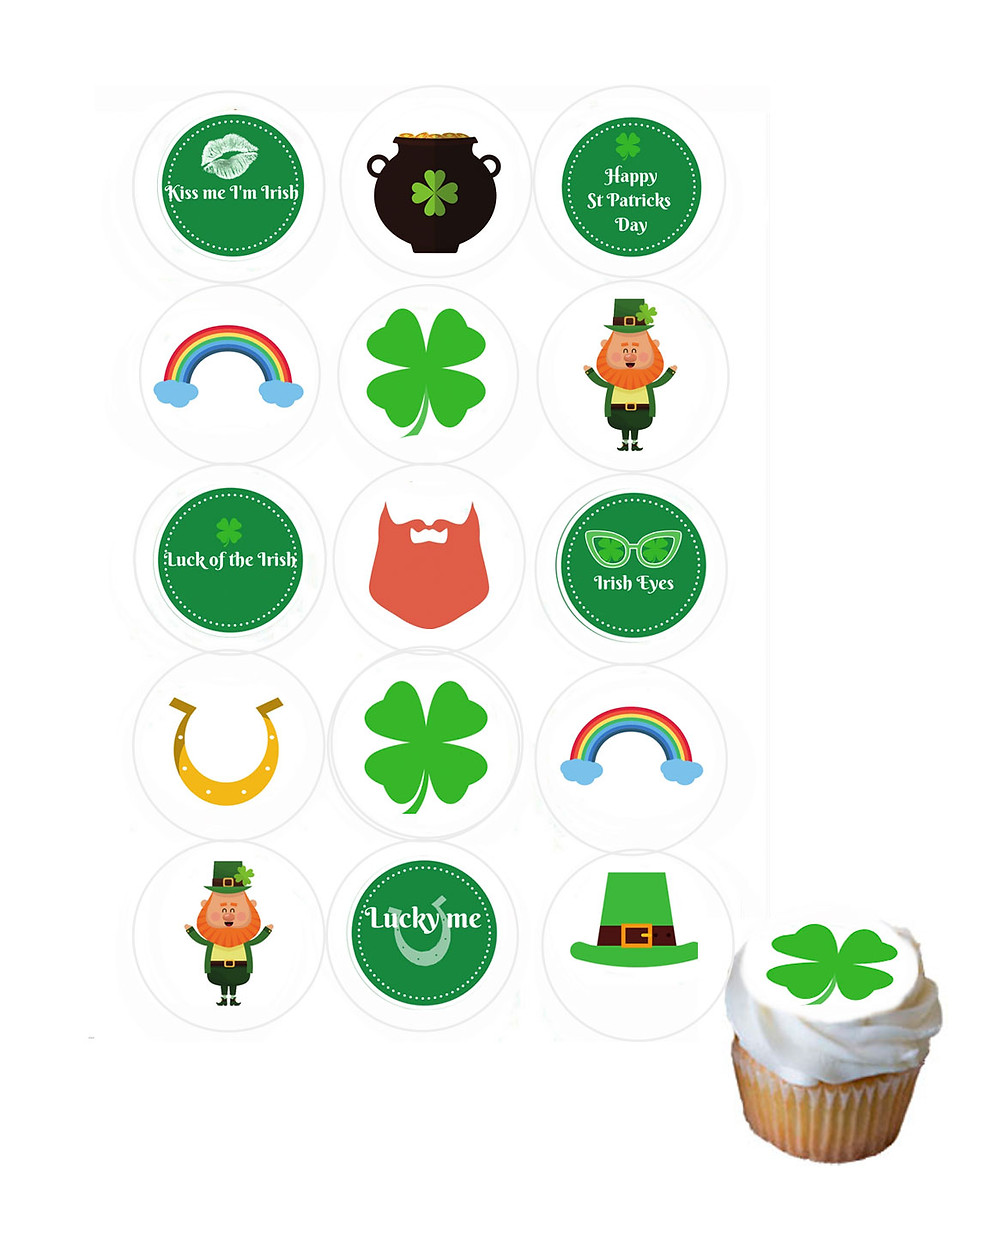 Edible cupcake decorations St Patrick's Day party theme